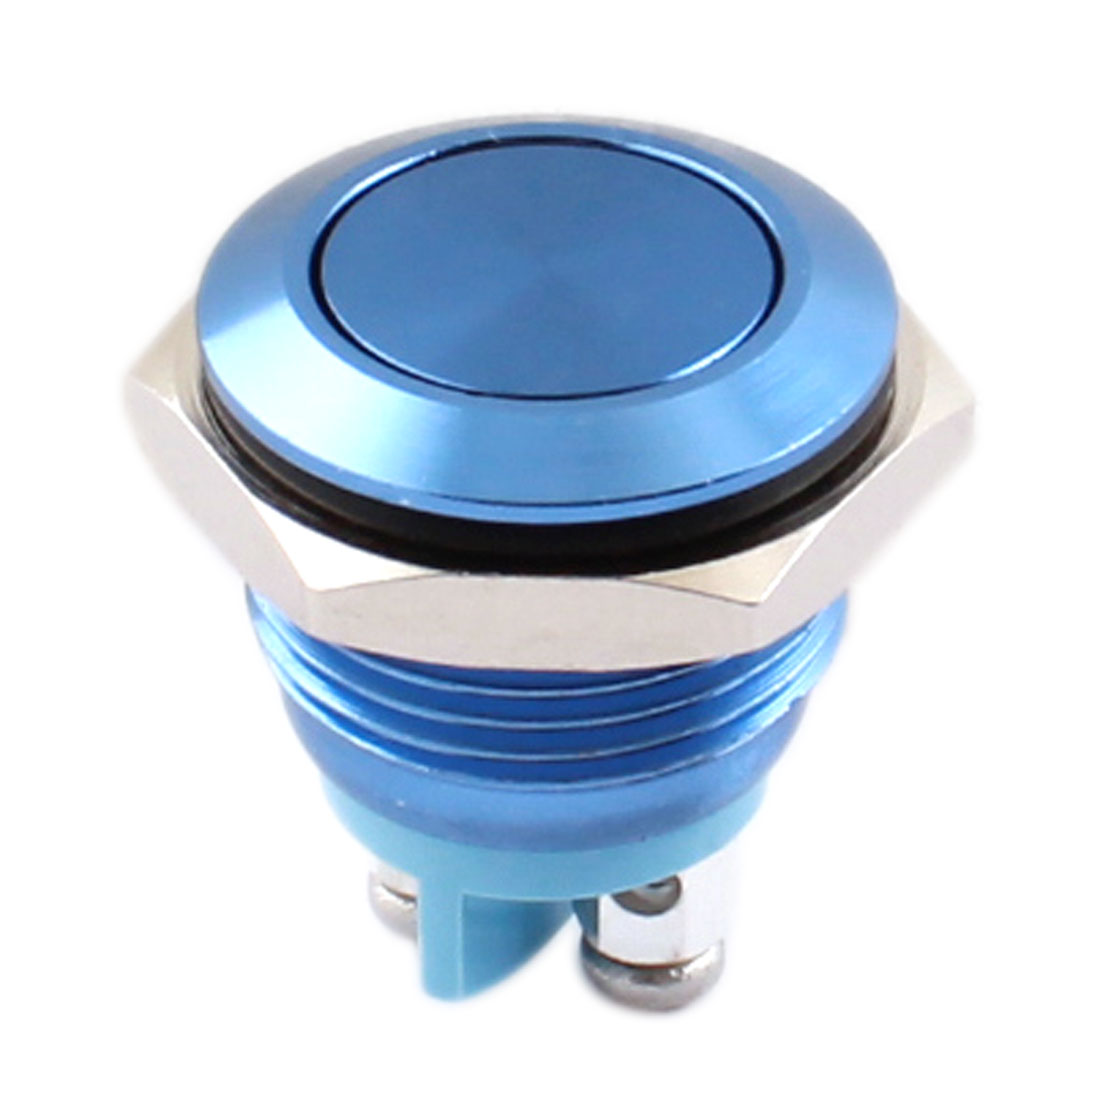 16mm Thread Panel Mount SPST NO Momentary Control Blue Metal Push Button Switch AC 250V 3A